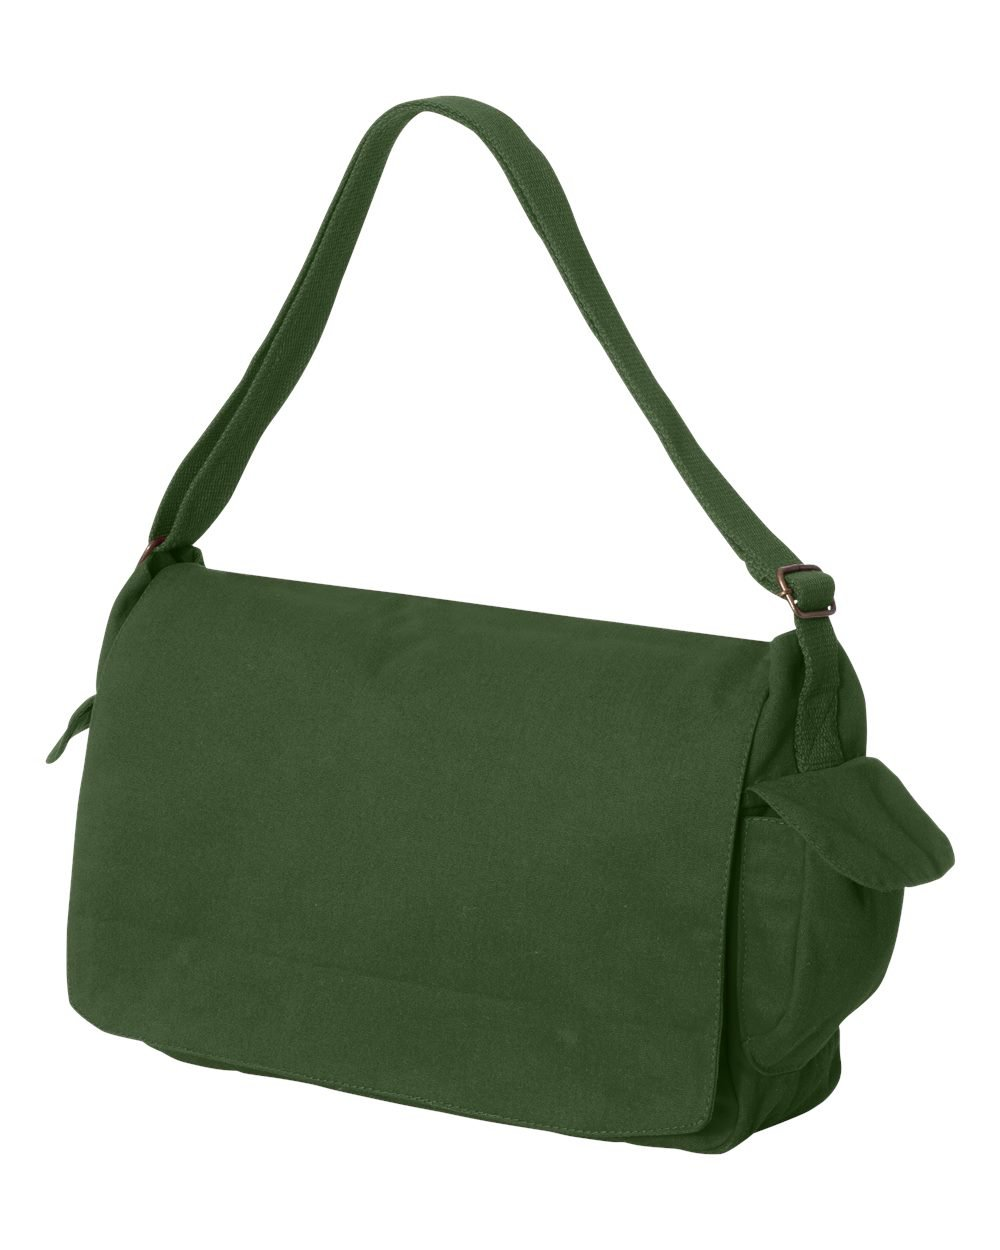 Tenacitee Born in 2002 - Aged Like a Fine Wine Green Brushed Canvas Messenger Bag by Tenacitee (Image #2)